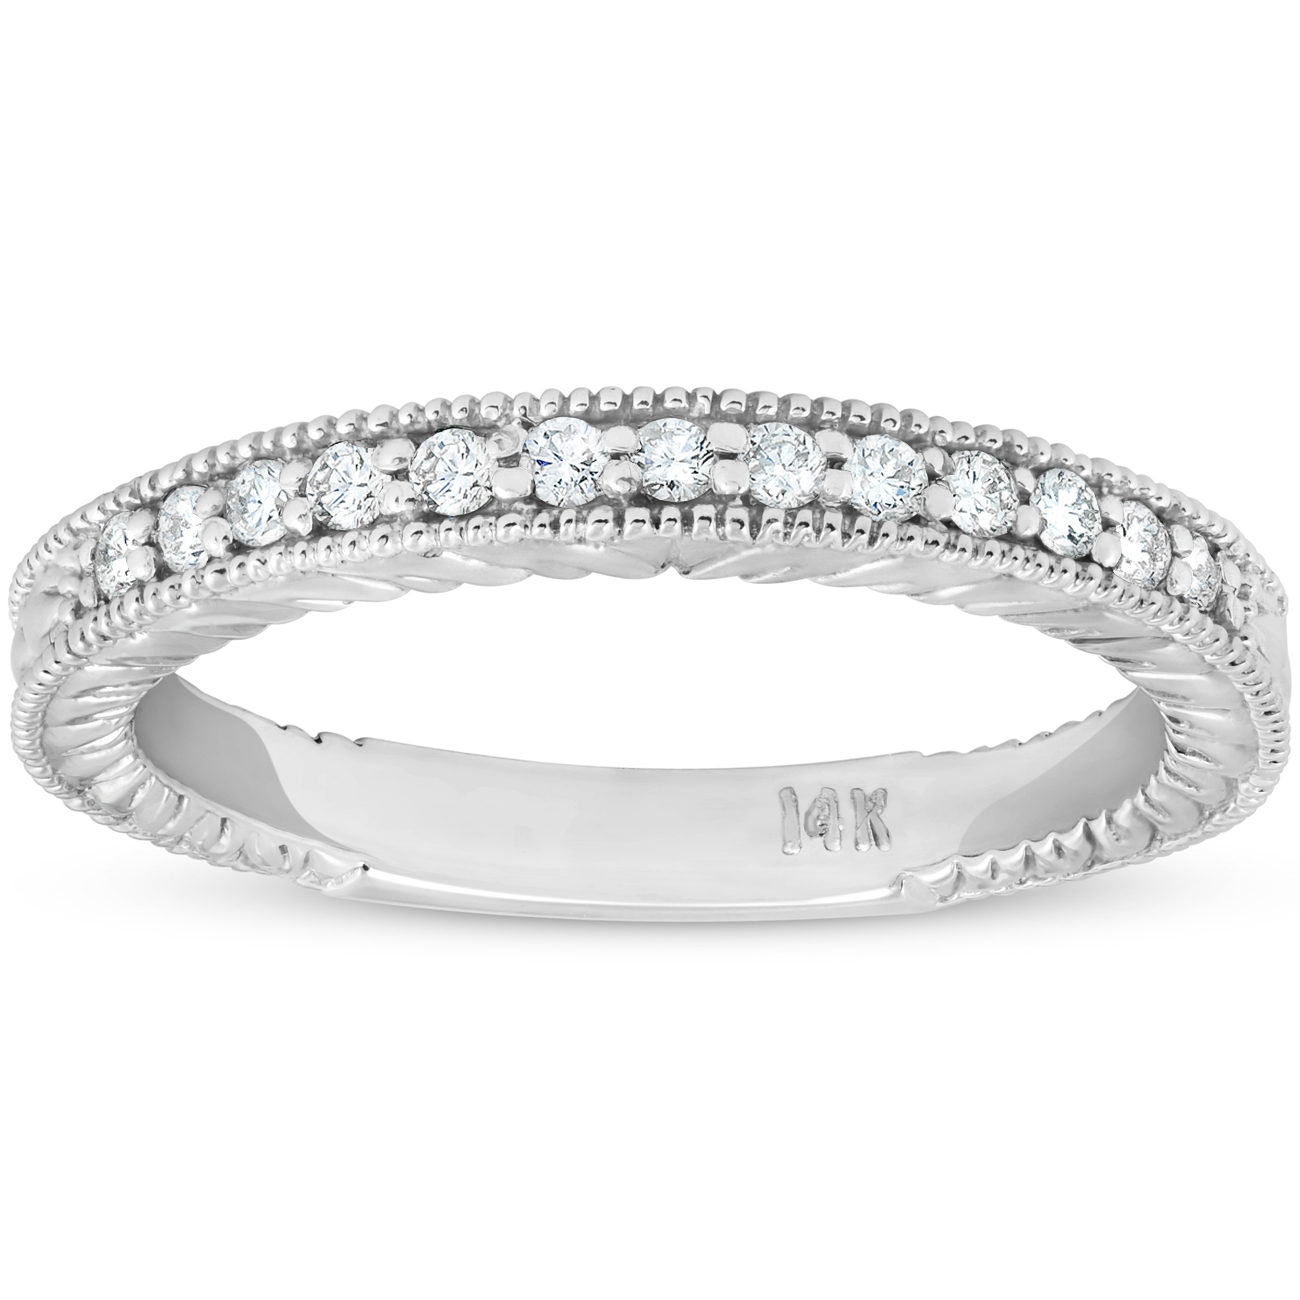 83ff24f48a710 Details about G/SI .20ct Diamond Vintage Womens Wedding Ring Stackable 14k  White Gold Band